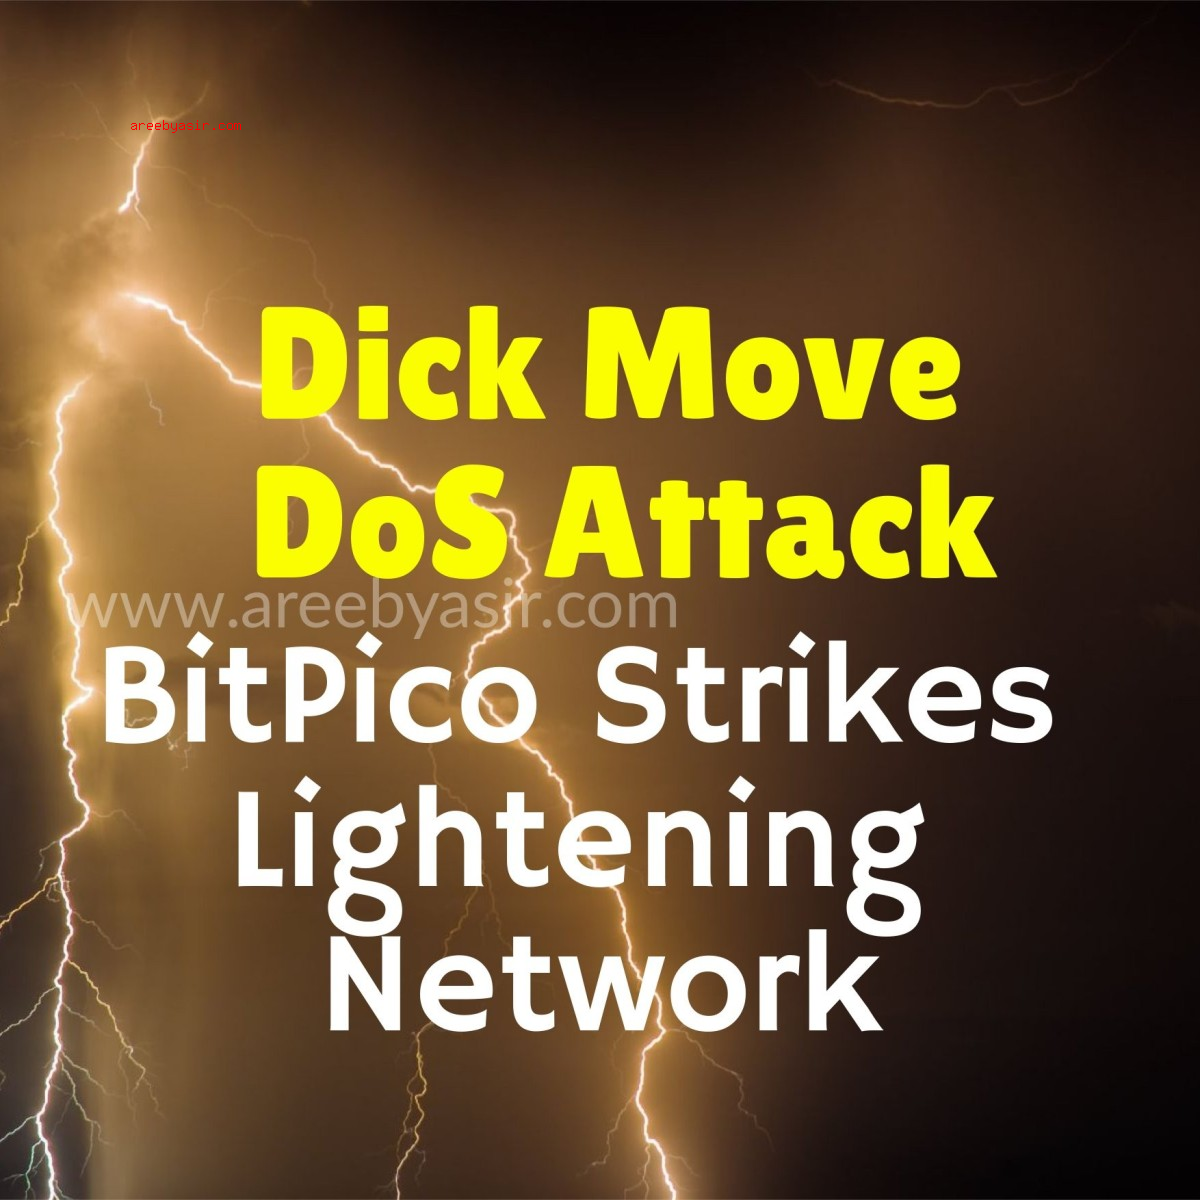 Lightning Network – LN Network DDOS'd and Attacked By Organized Group